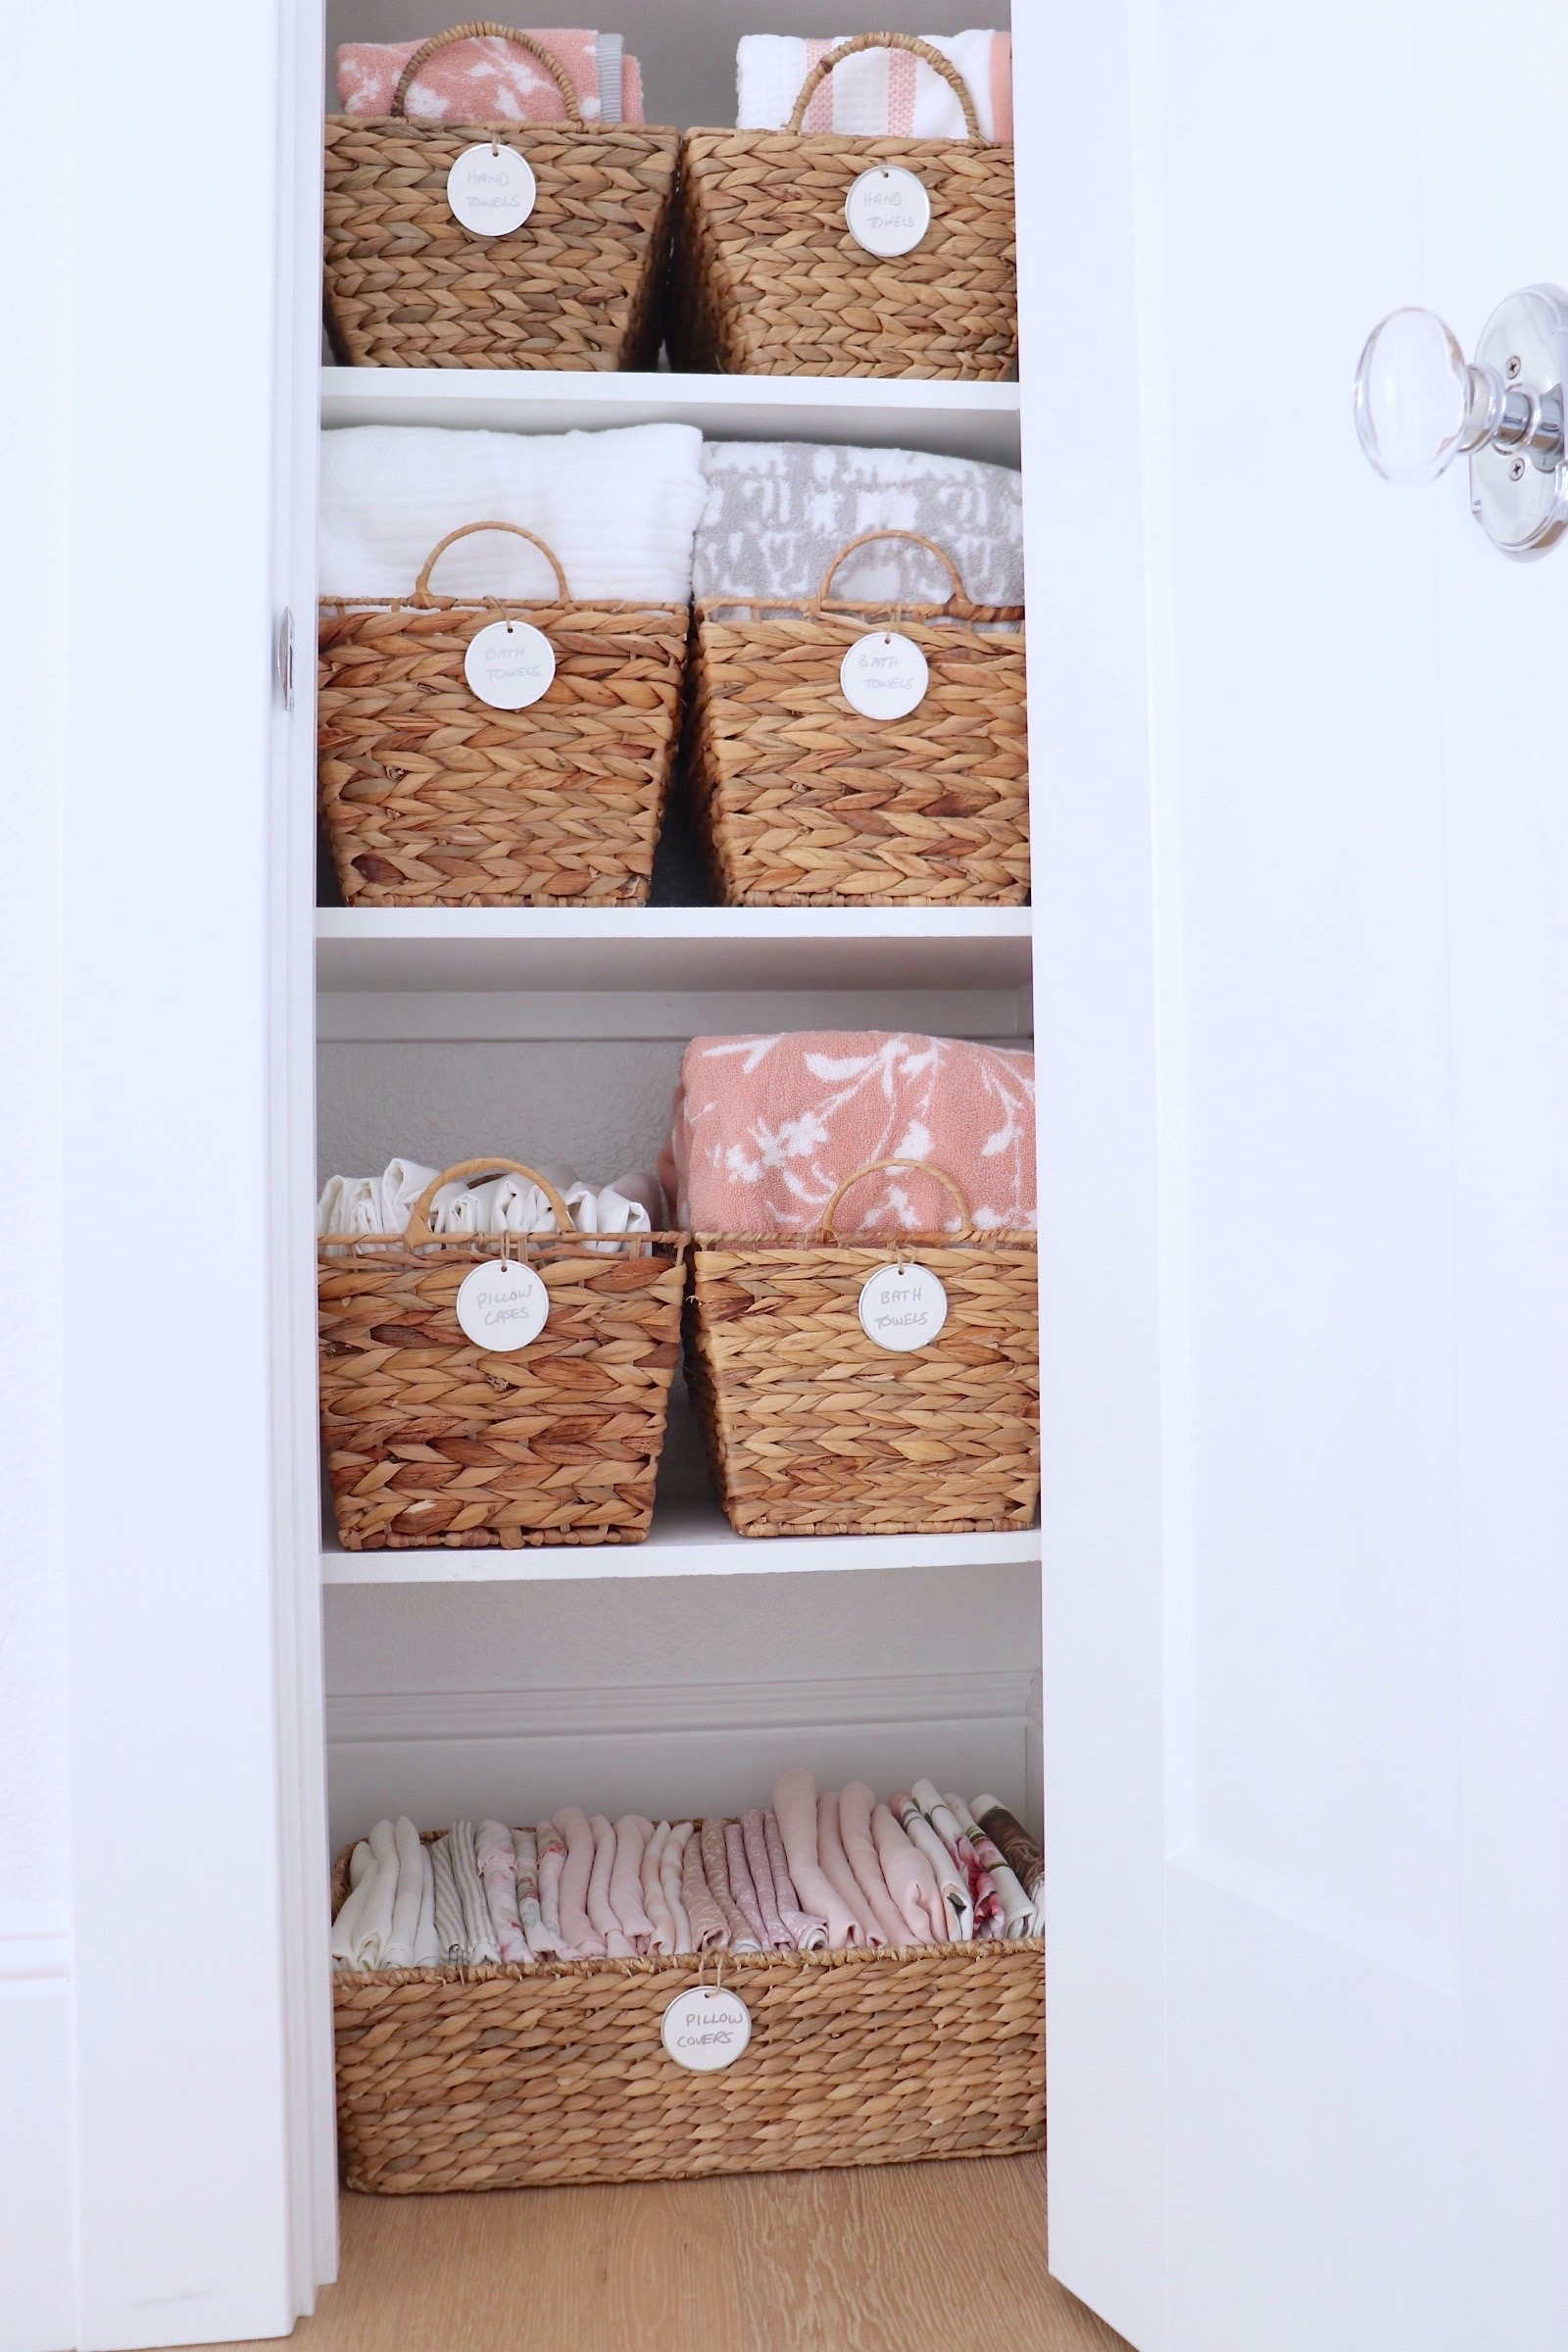 Beginners Guide to Organization for Life & Home